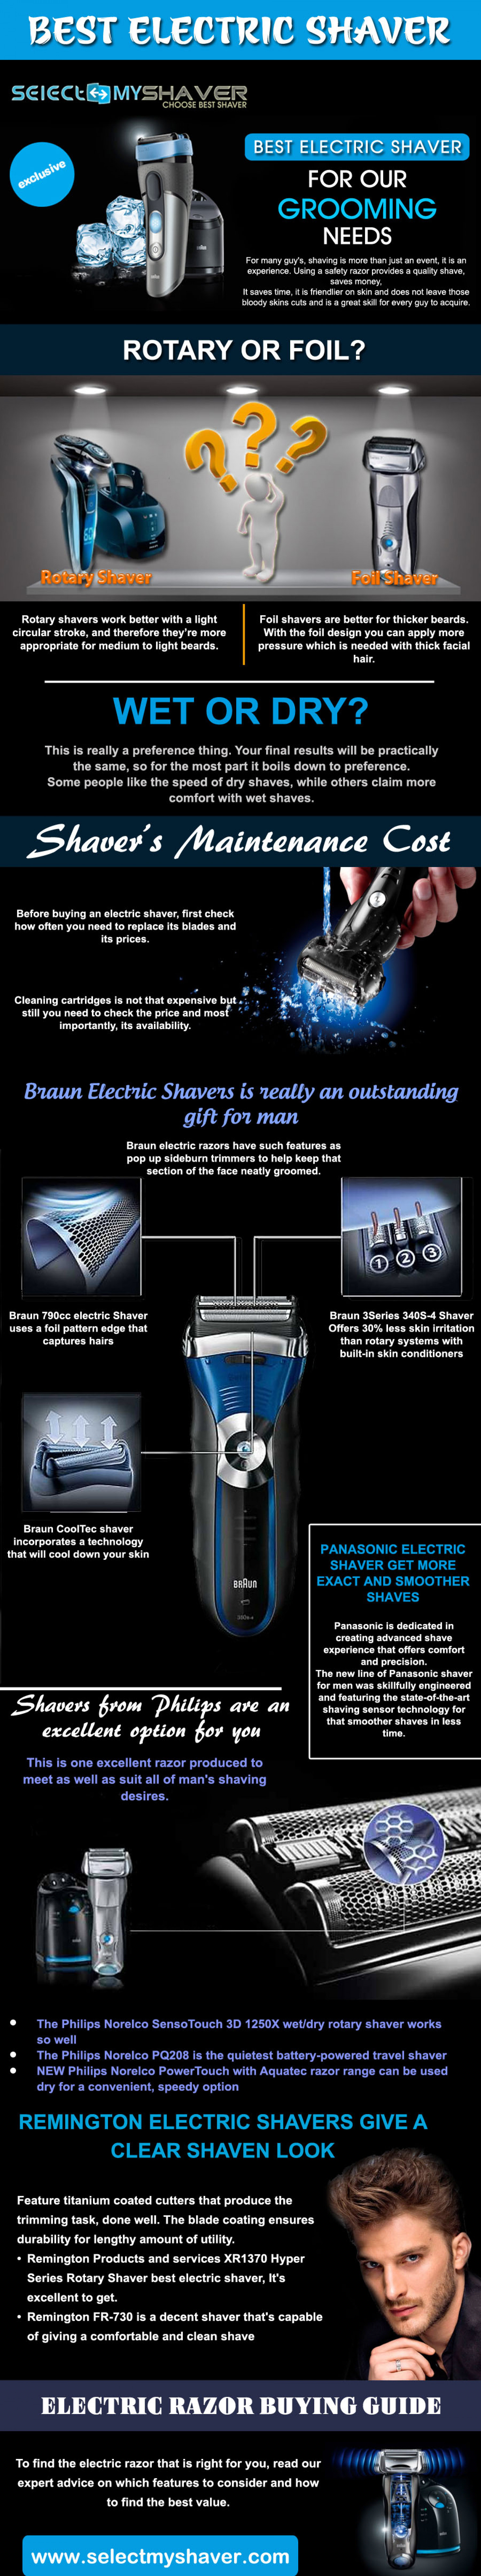 Electric shaver Infographic